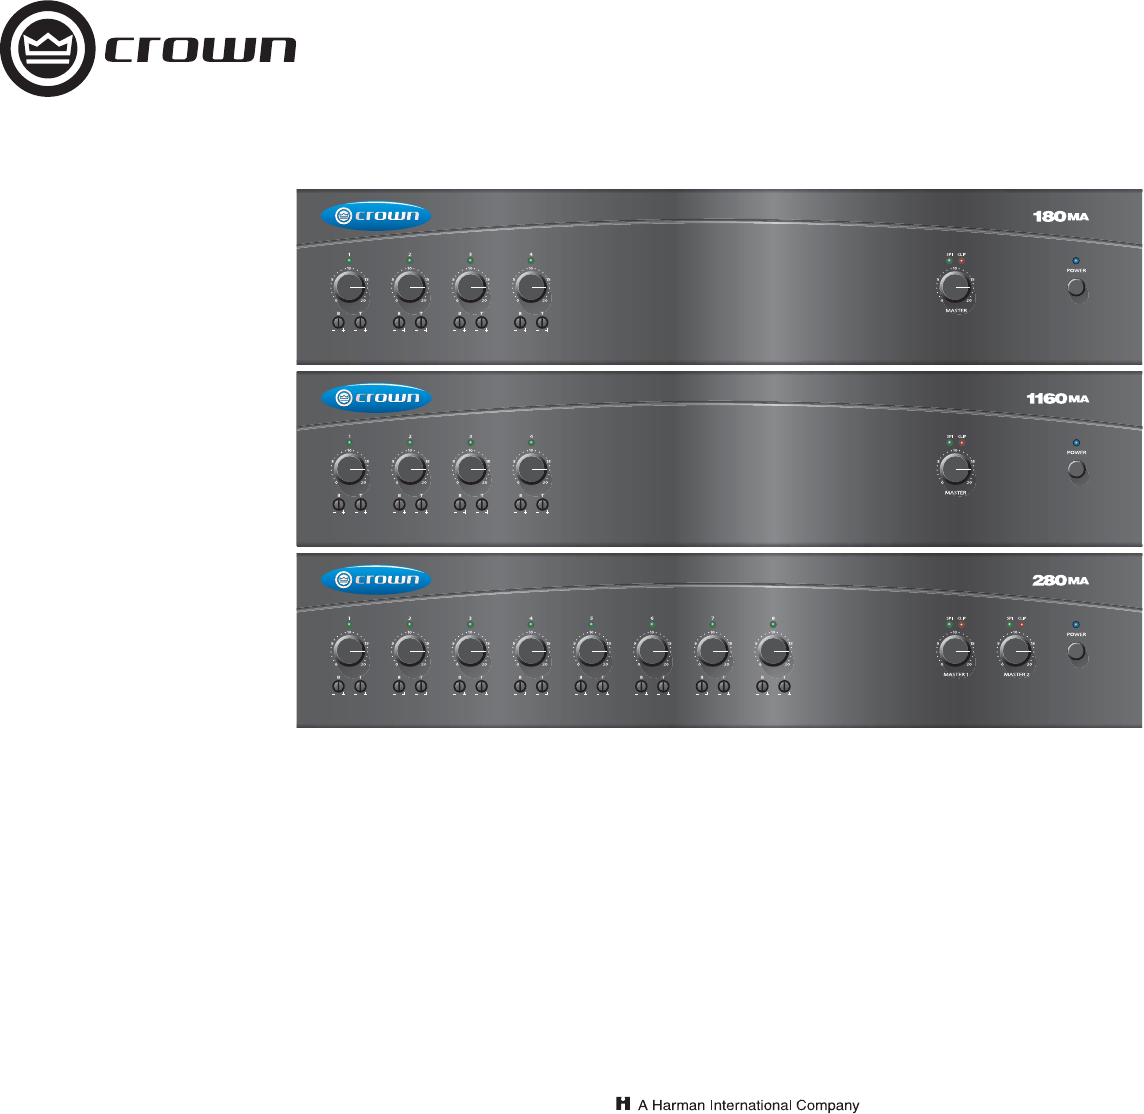 crown audio stereo amplifier 1160ma user guide manualsonline com rh audio manualsonline com Crown 280 MA Crown 135MA